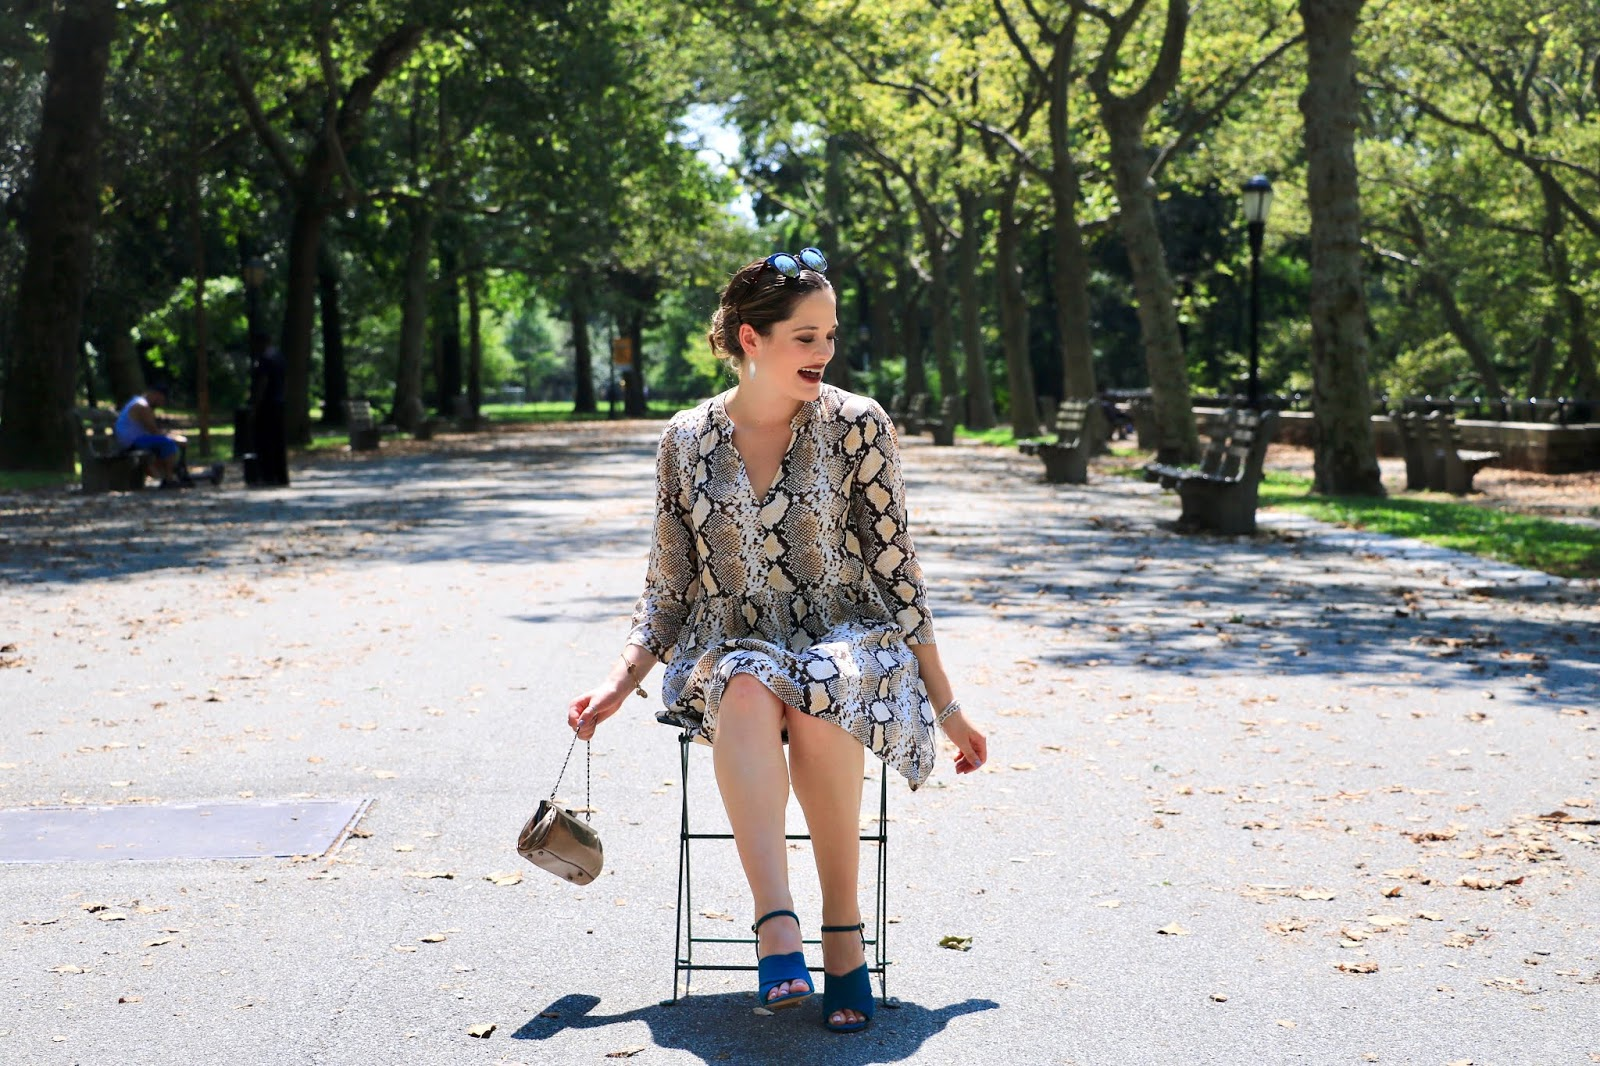 Nyc fashion blogger Kathleen Harper wearing an animal print outfit in fall 2019.